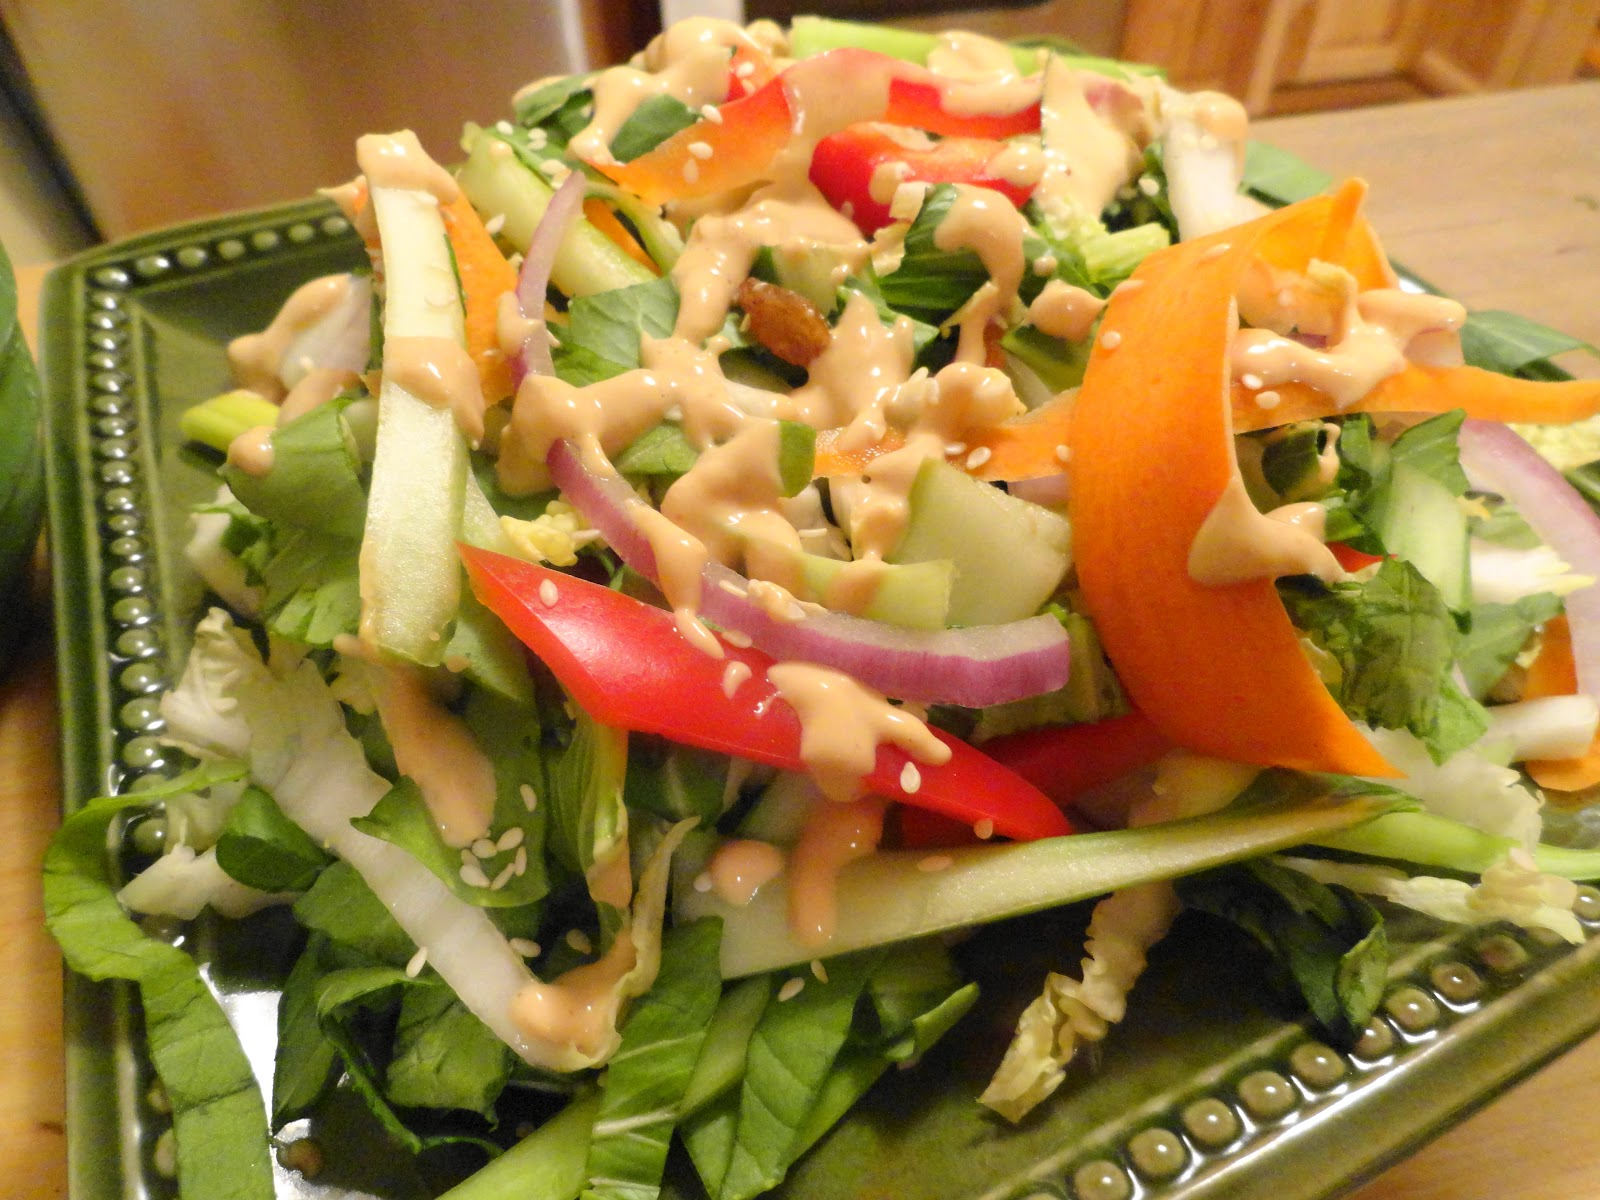 Bok Choy And Pineapple Salad With Peanut Dressing Recipes — Dishmaps